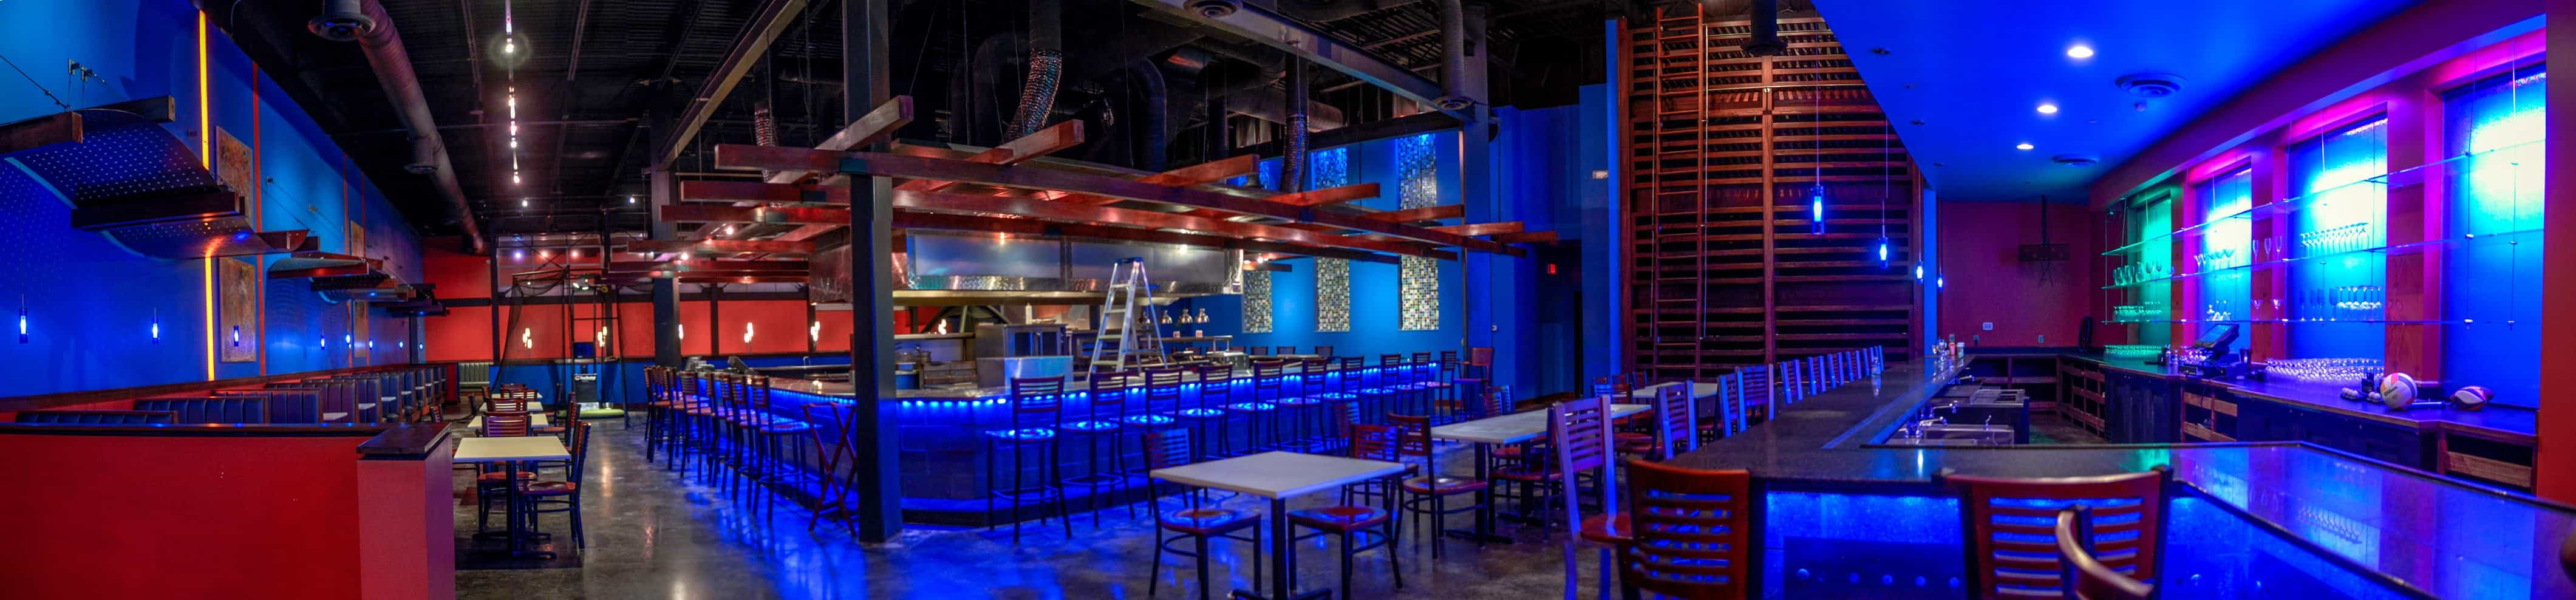 Large Music Venue Set To Open Off Woodruff Road The